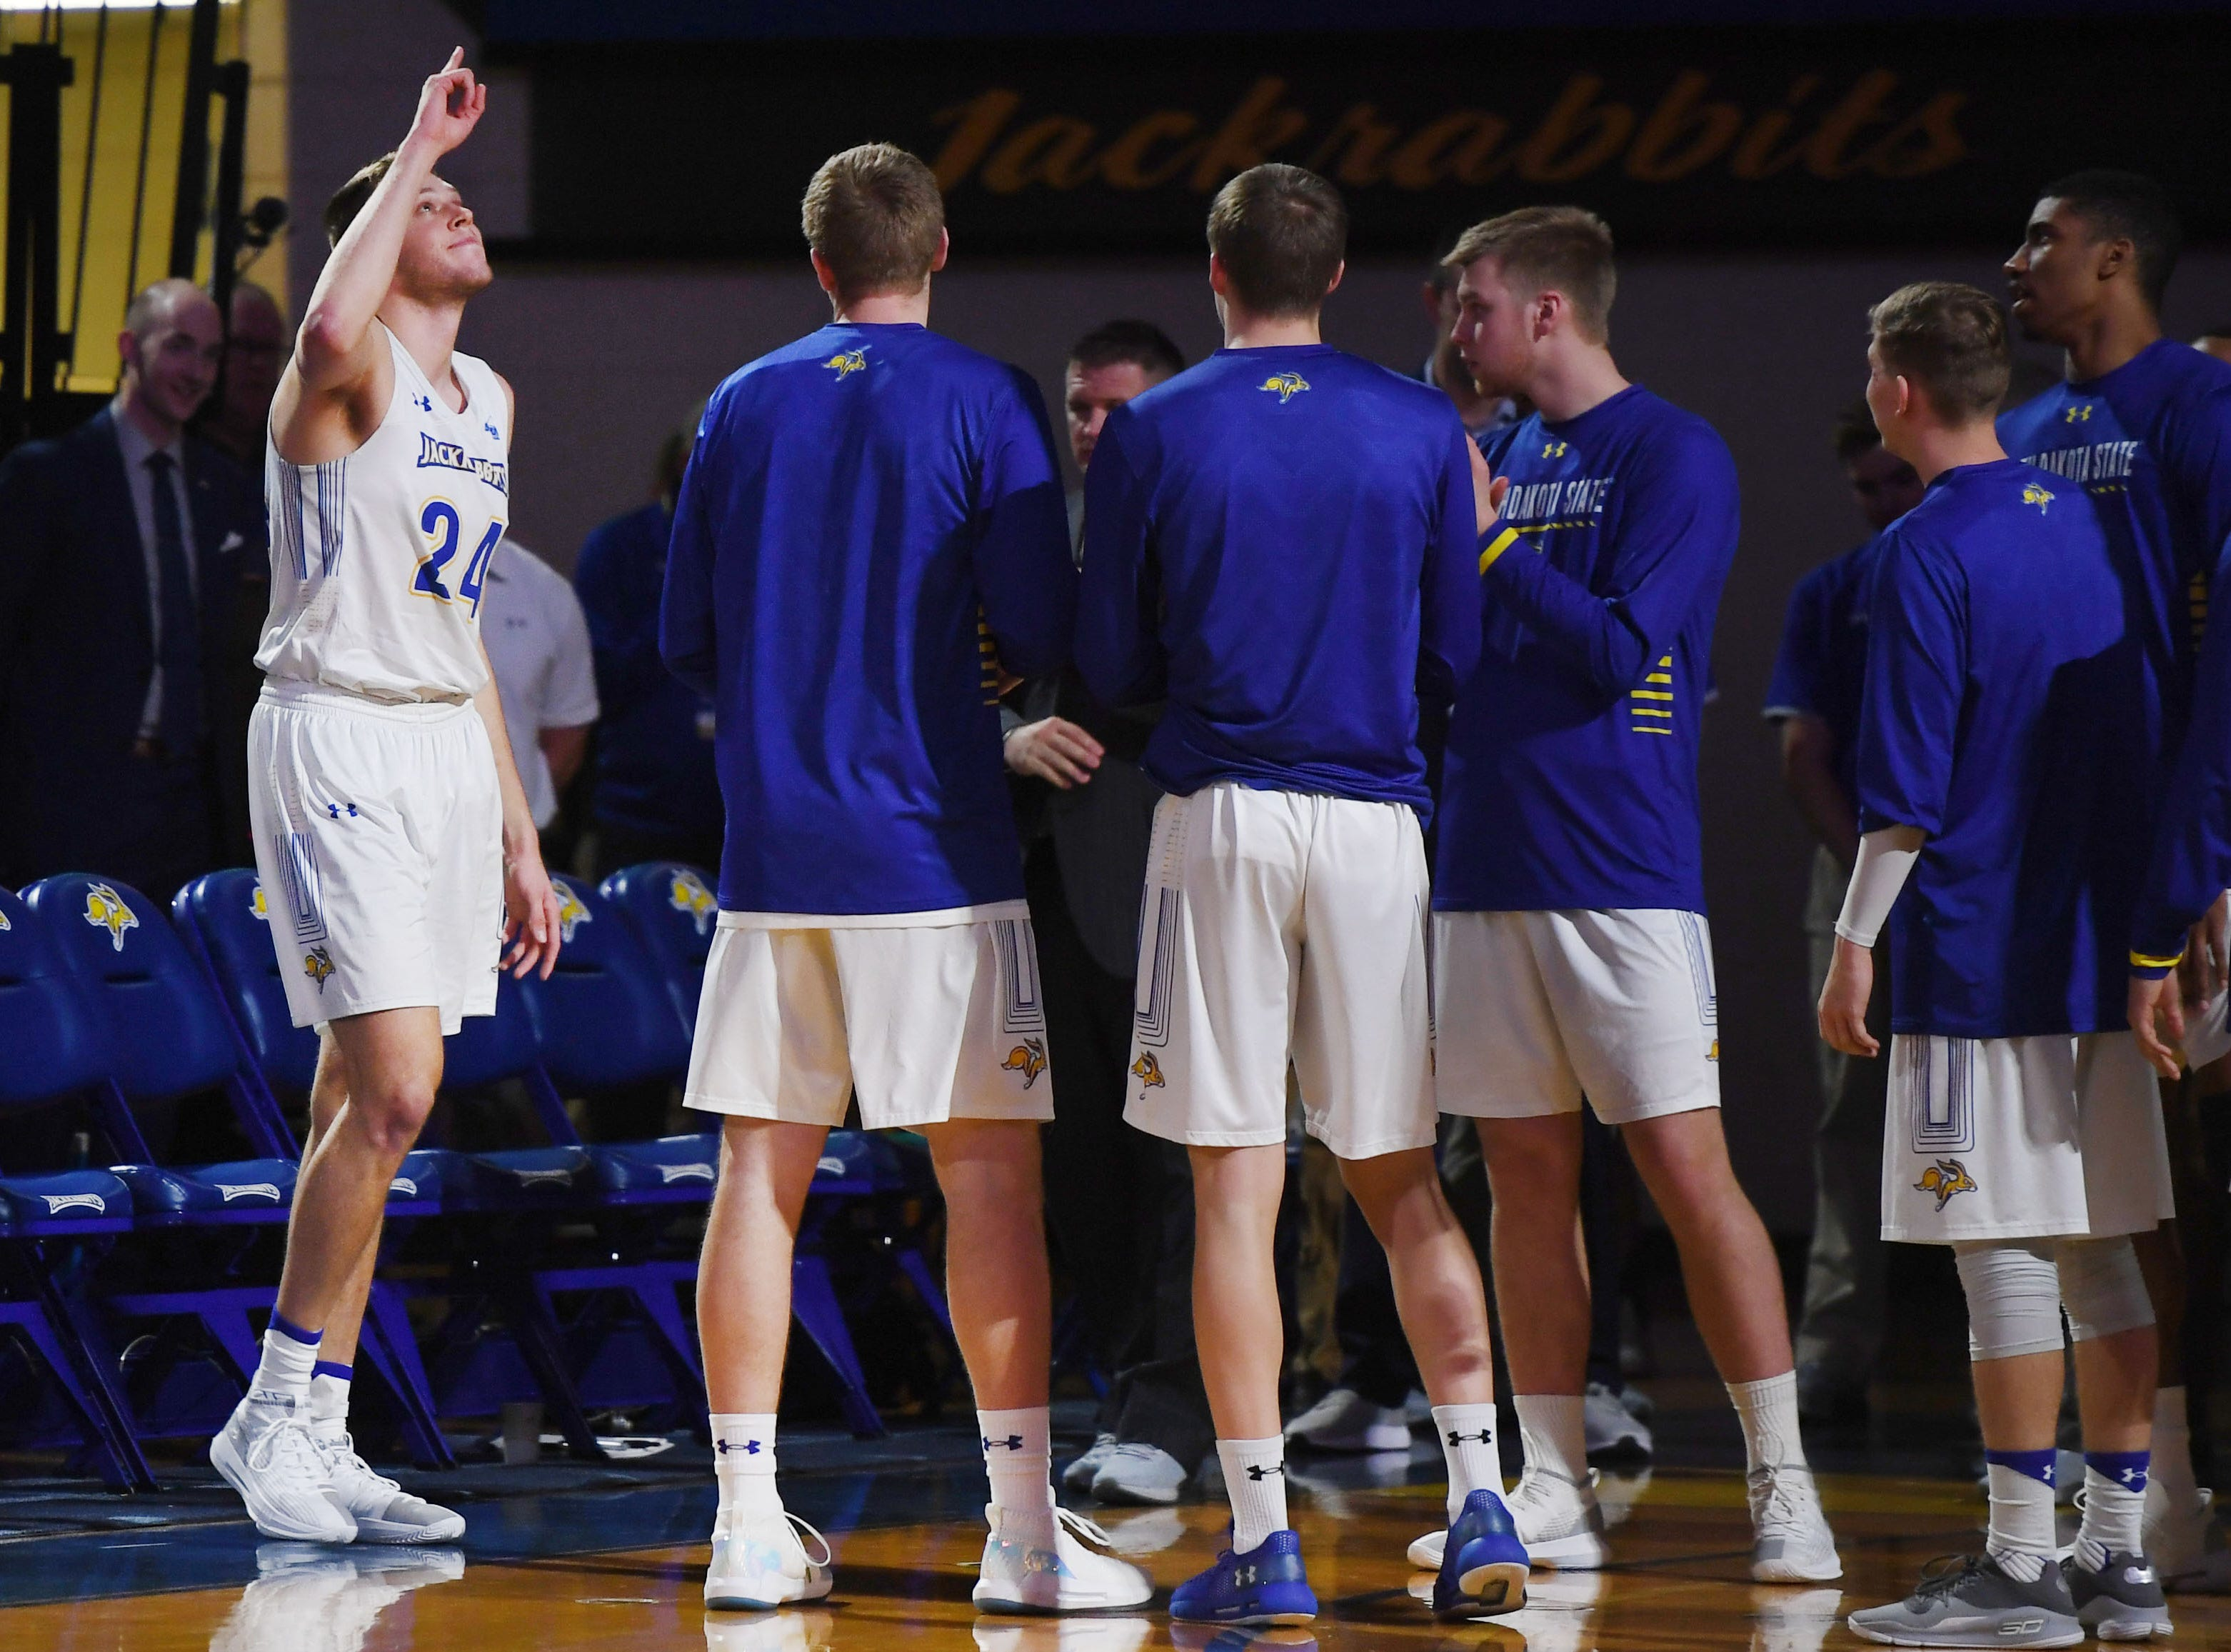 SDSU's Mike Daum points to the sky as he takes the court for the game against Omaha Saturday, Jan. 26, at Frost Arena in Brookings. SDSU won 83-73 against Omaha.